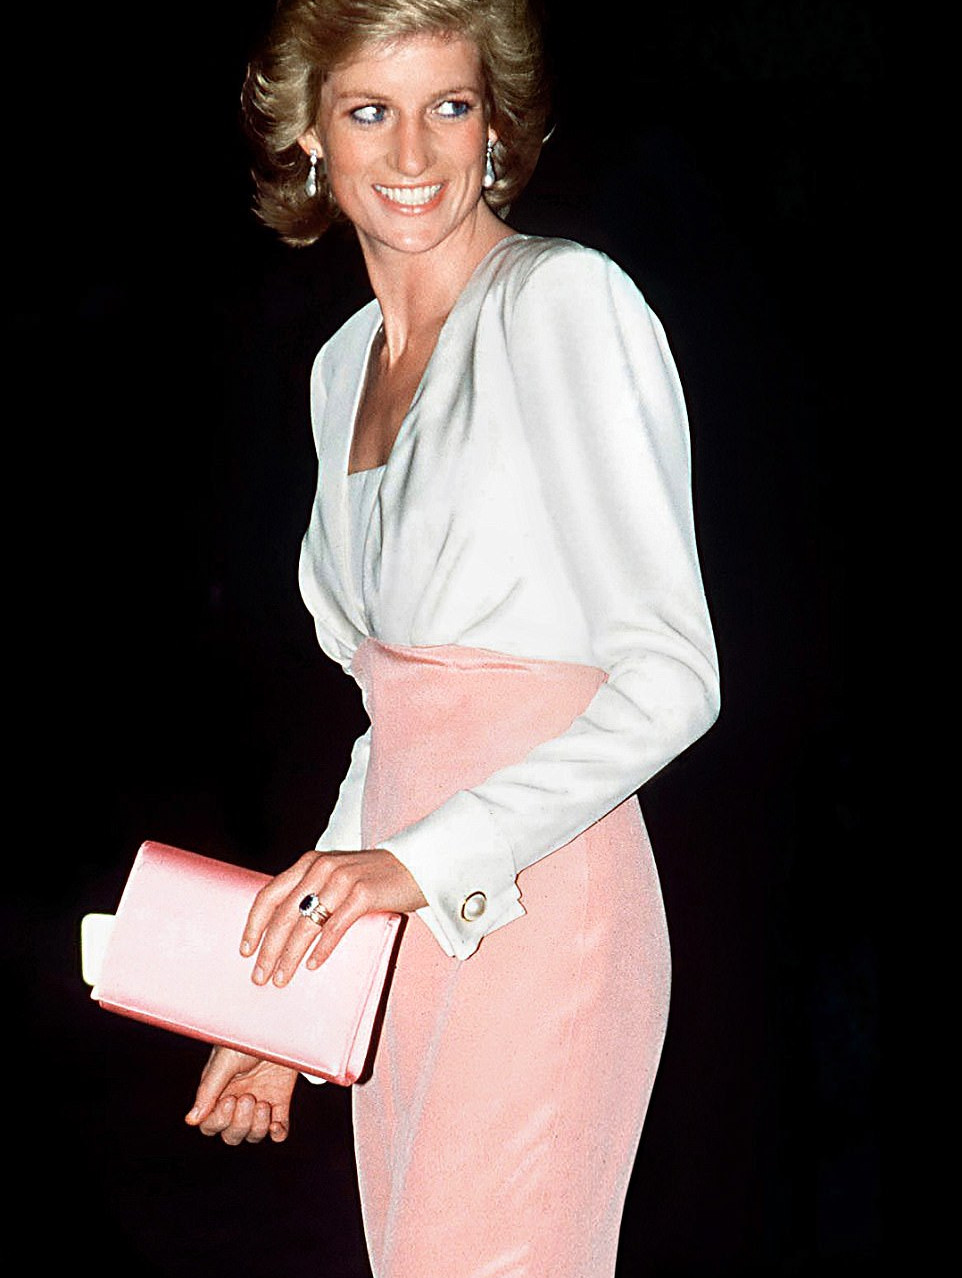 Tickled pink: A beaming Diana wears a Catherine Walker silk crepe dress for the ballet at the London Coliseum, 1989 Taffeta fairytale: She shimmers in an emerald green gown by Graham Wren at a Swansea gala in 1981